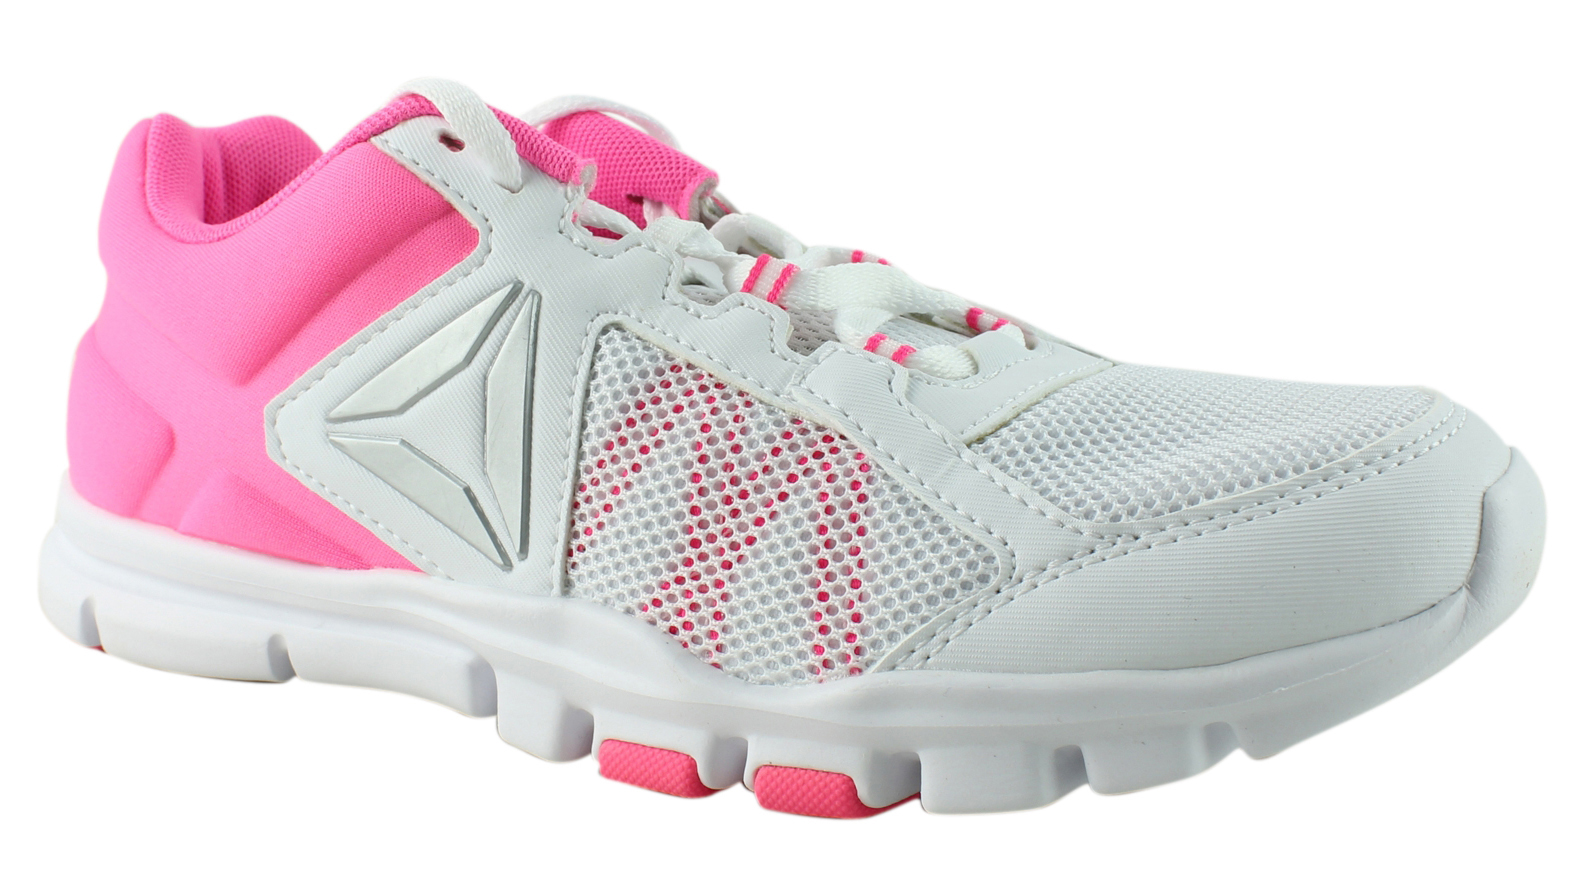 New Reebok Womens Yourflex Trainette 9.0 Mt Pink Cross Training Shoes Size  7.5 3971aece1